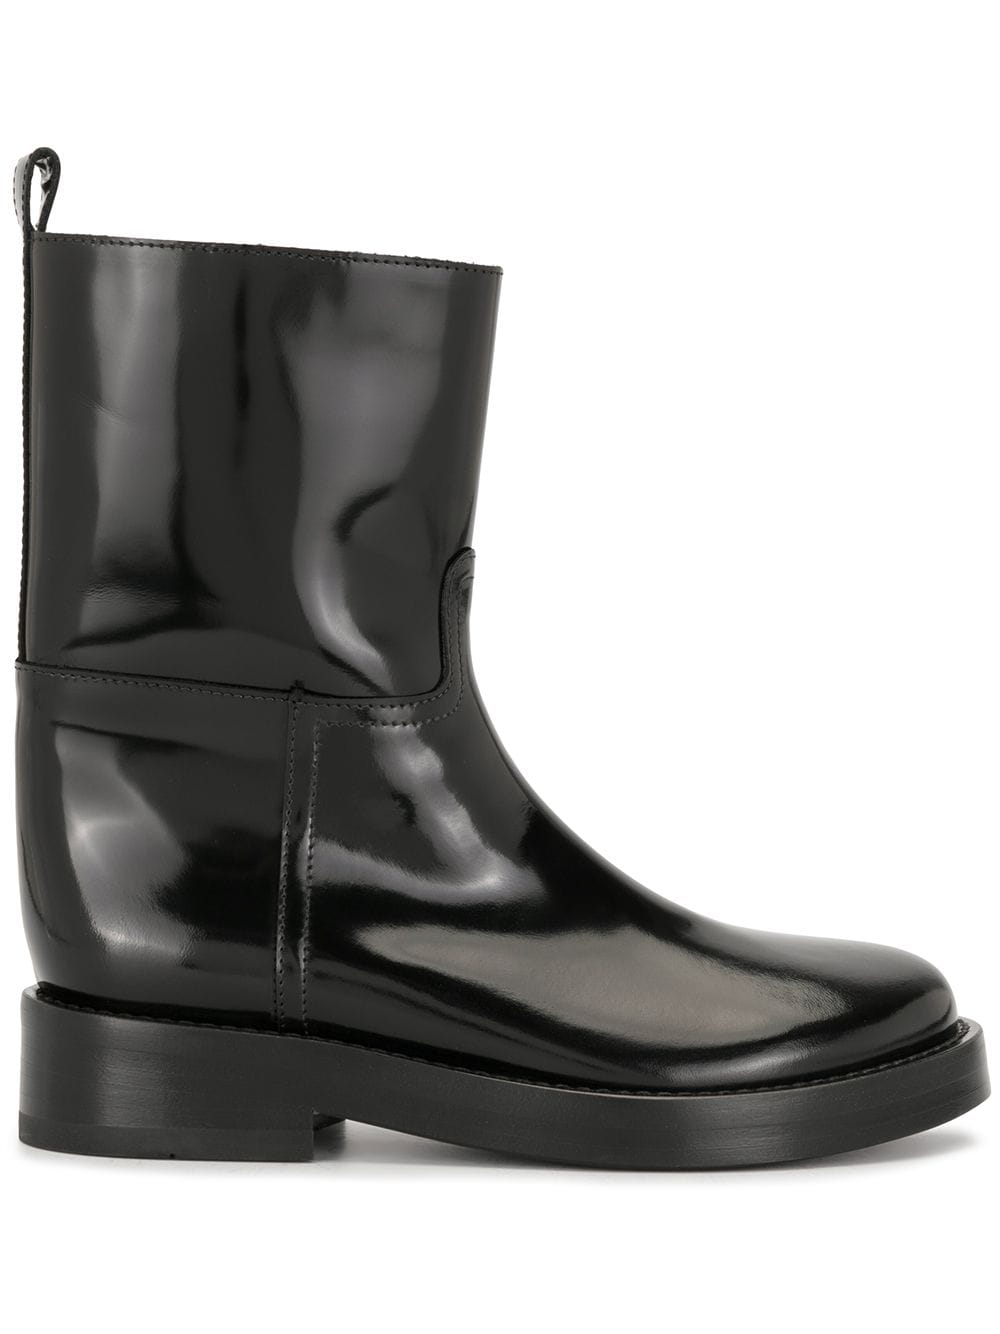 ANN DEMEULEMEESTER WOMEN CALF RIDING BOOTS PATENT LEATHER